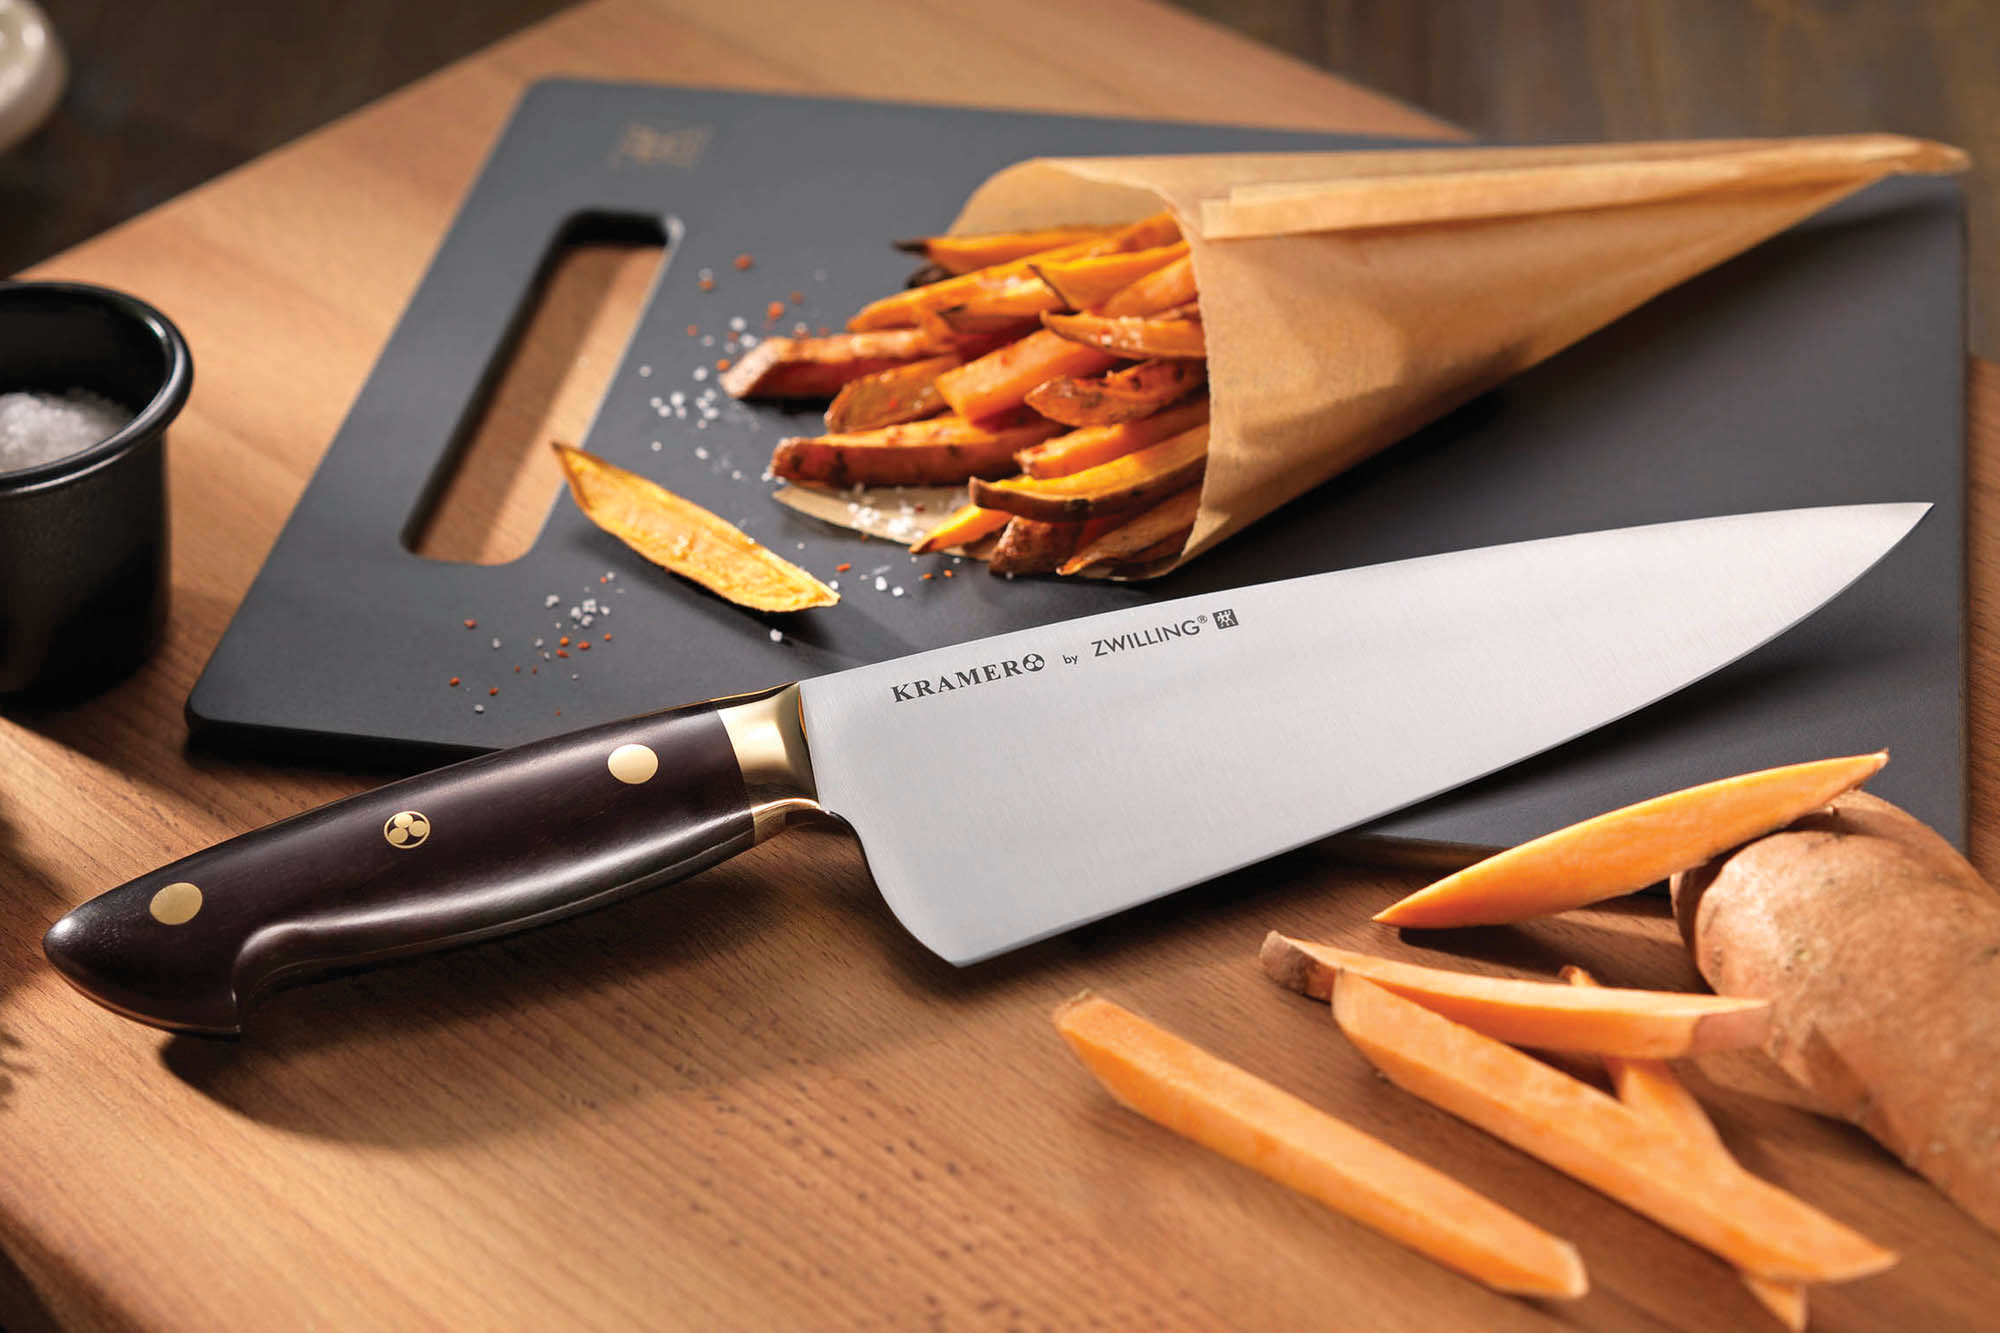 Bob Kramer Carbon Steel Chef S Knife 8 Inch By Zwilling